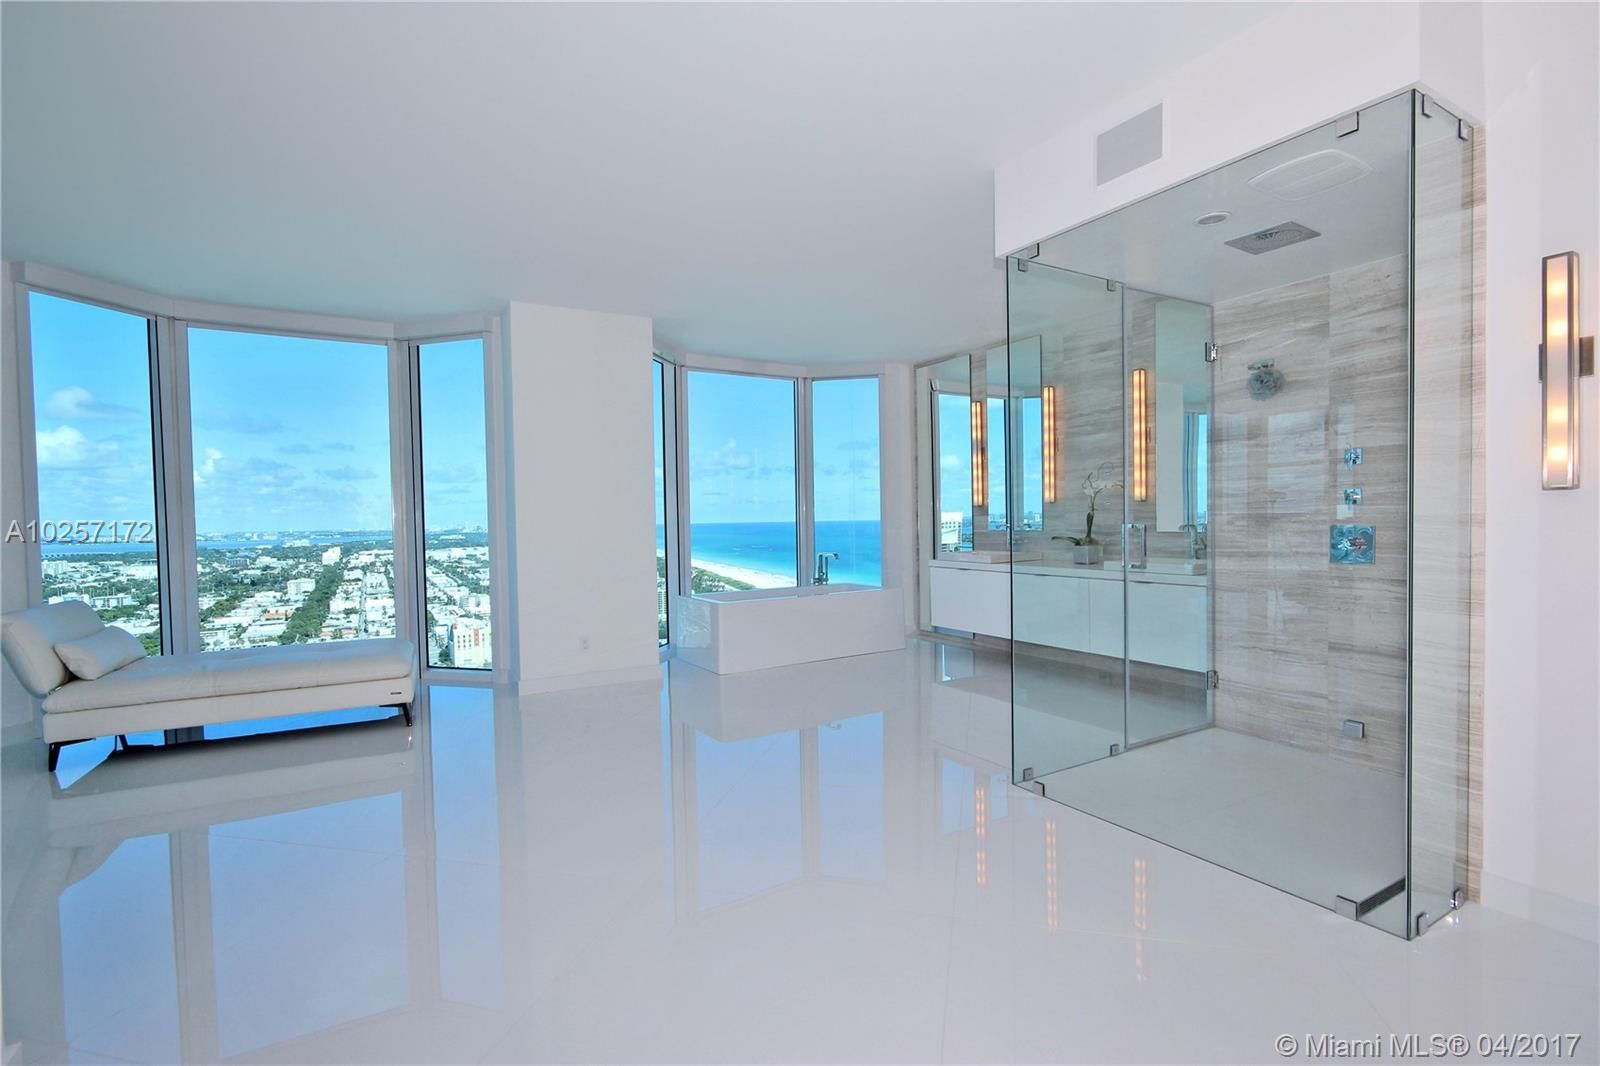 300 Pointe dr-LPH2 miami-beach--fl-33139-a10257172-Pic18